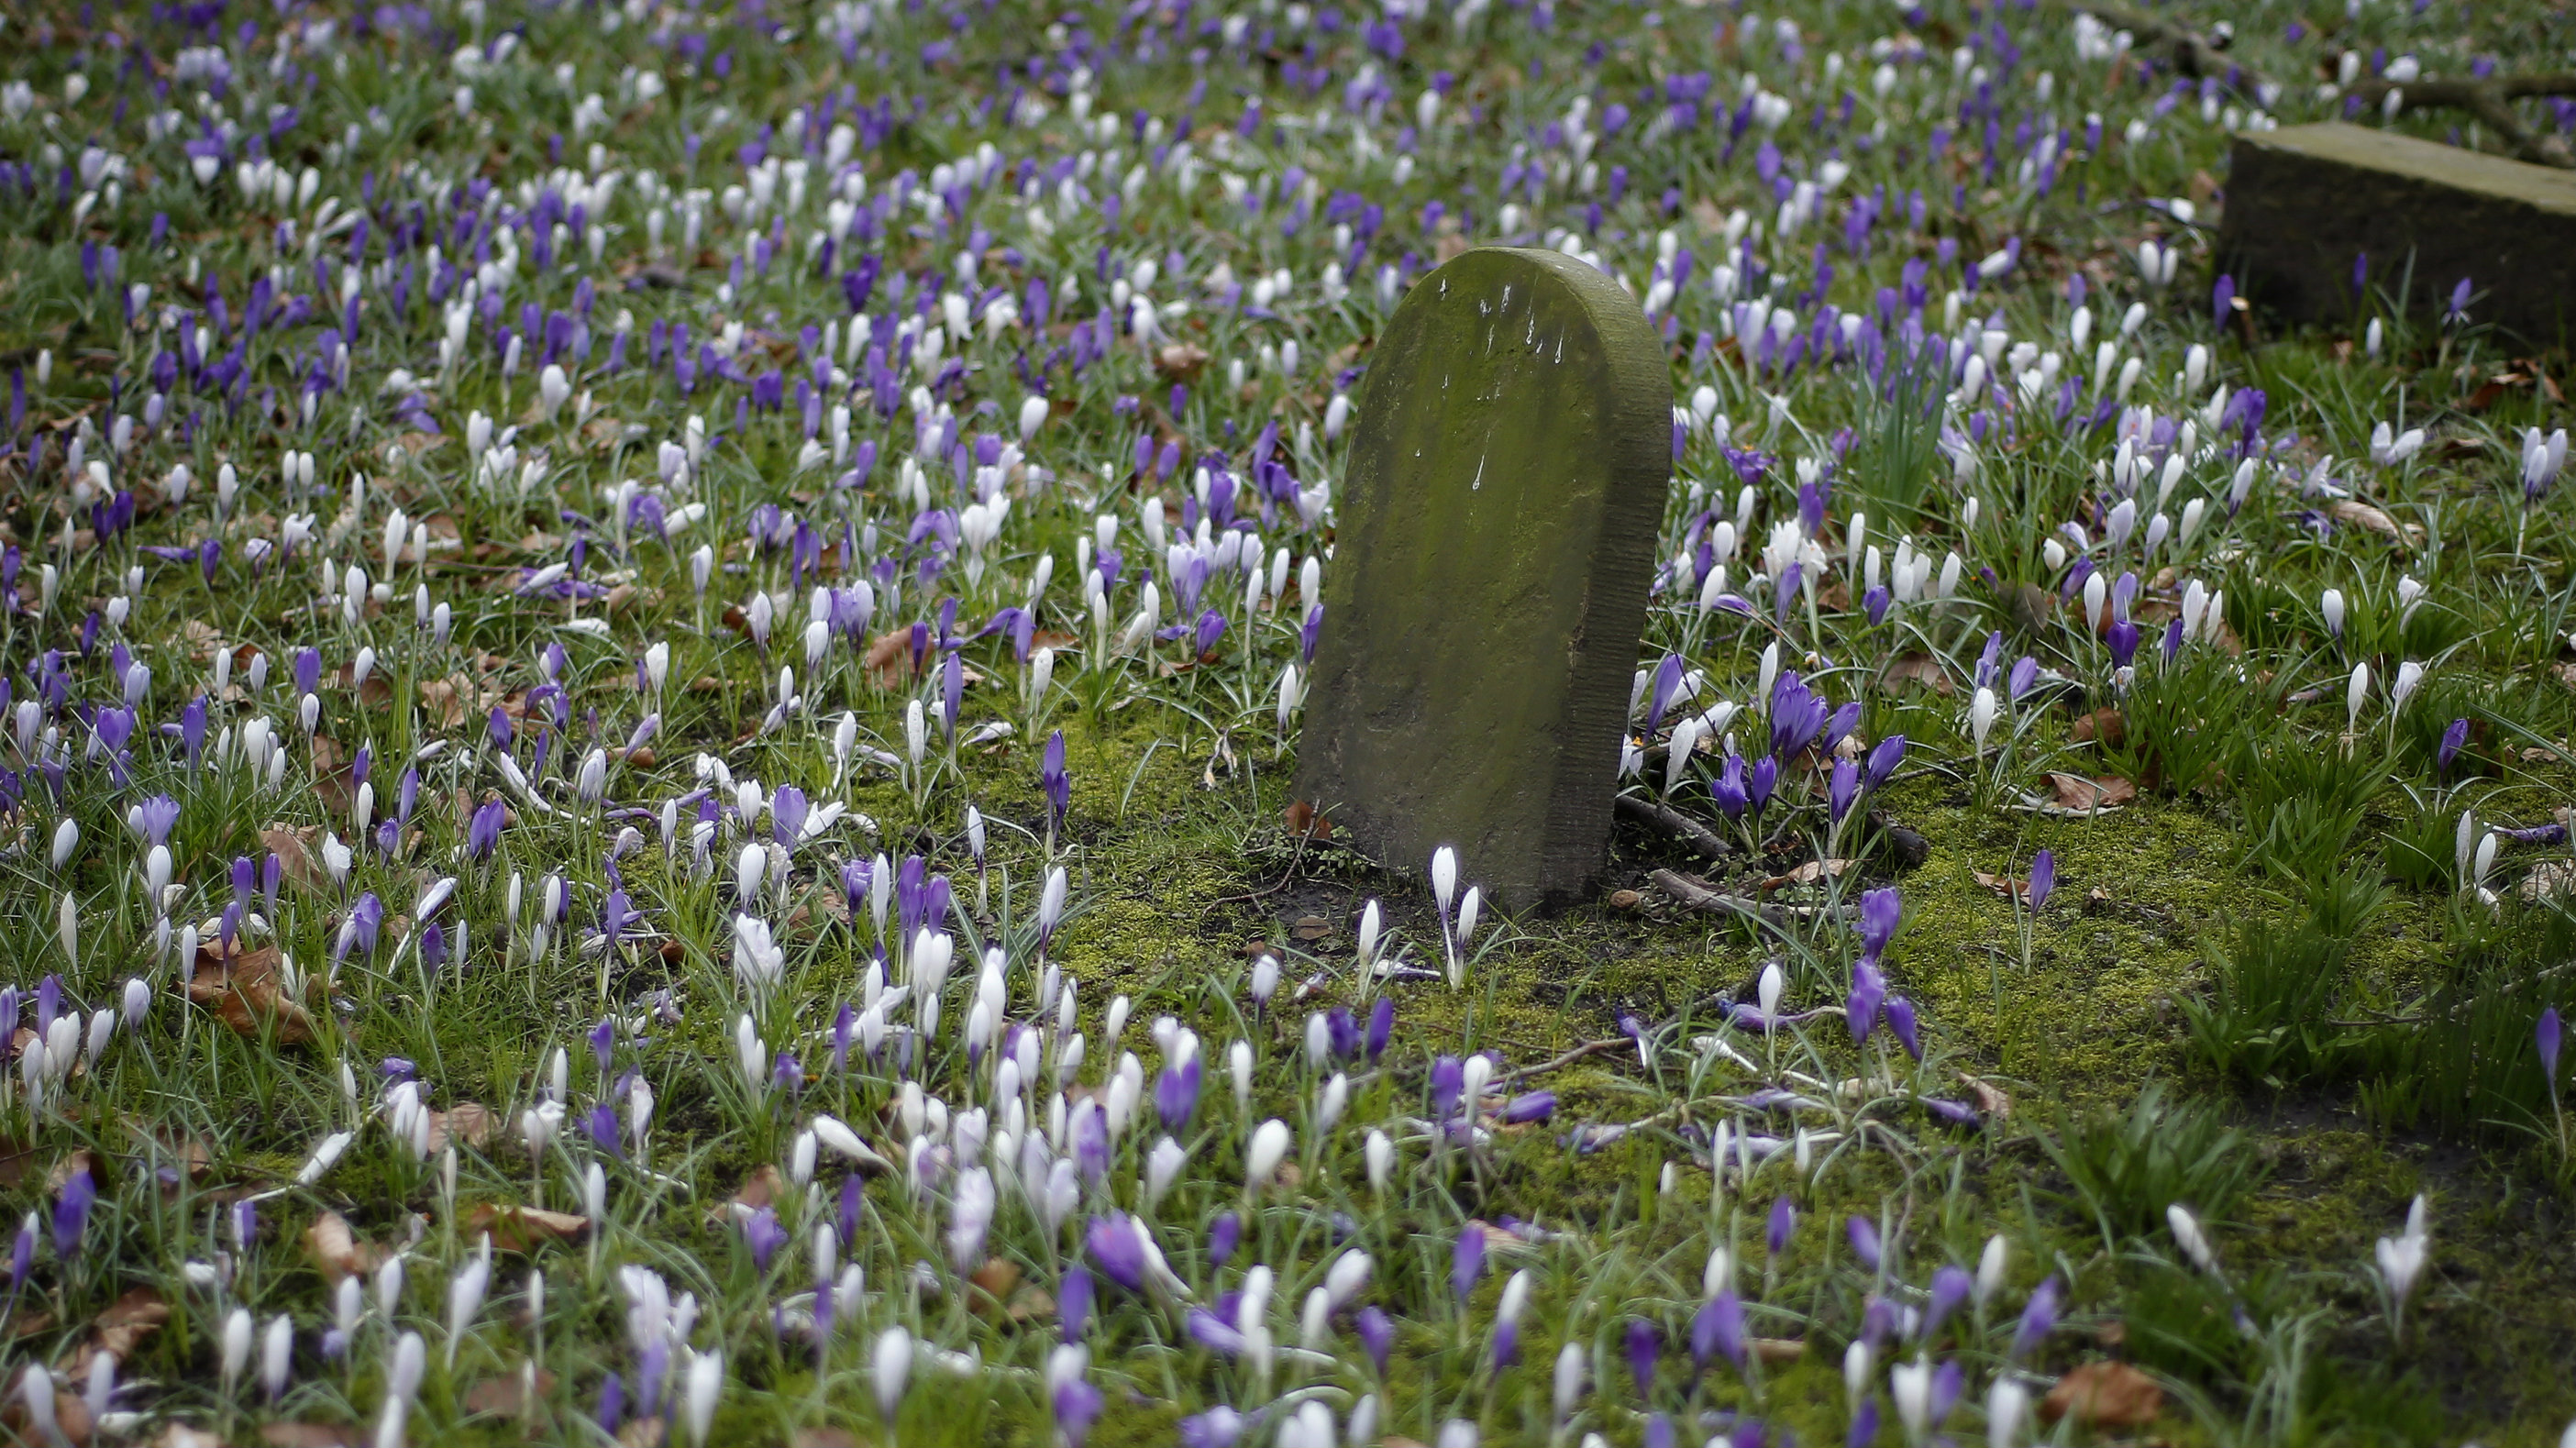 Spring flowers bloom between the gravestones in a church yard in Knutsford, northern England March 19, 2013. REUTERS/Phil Noble (BRITAIN - Tags: ENVIRONMENT SOCIETY RELIGION)